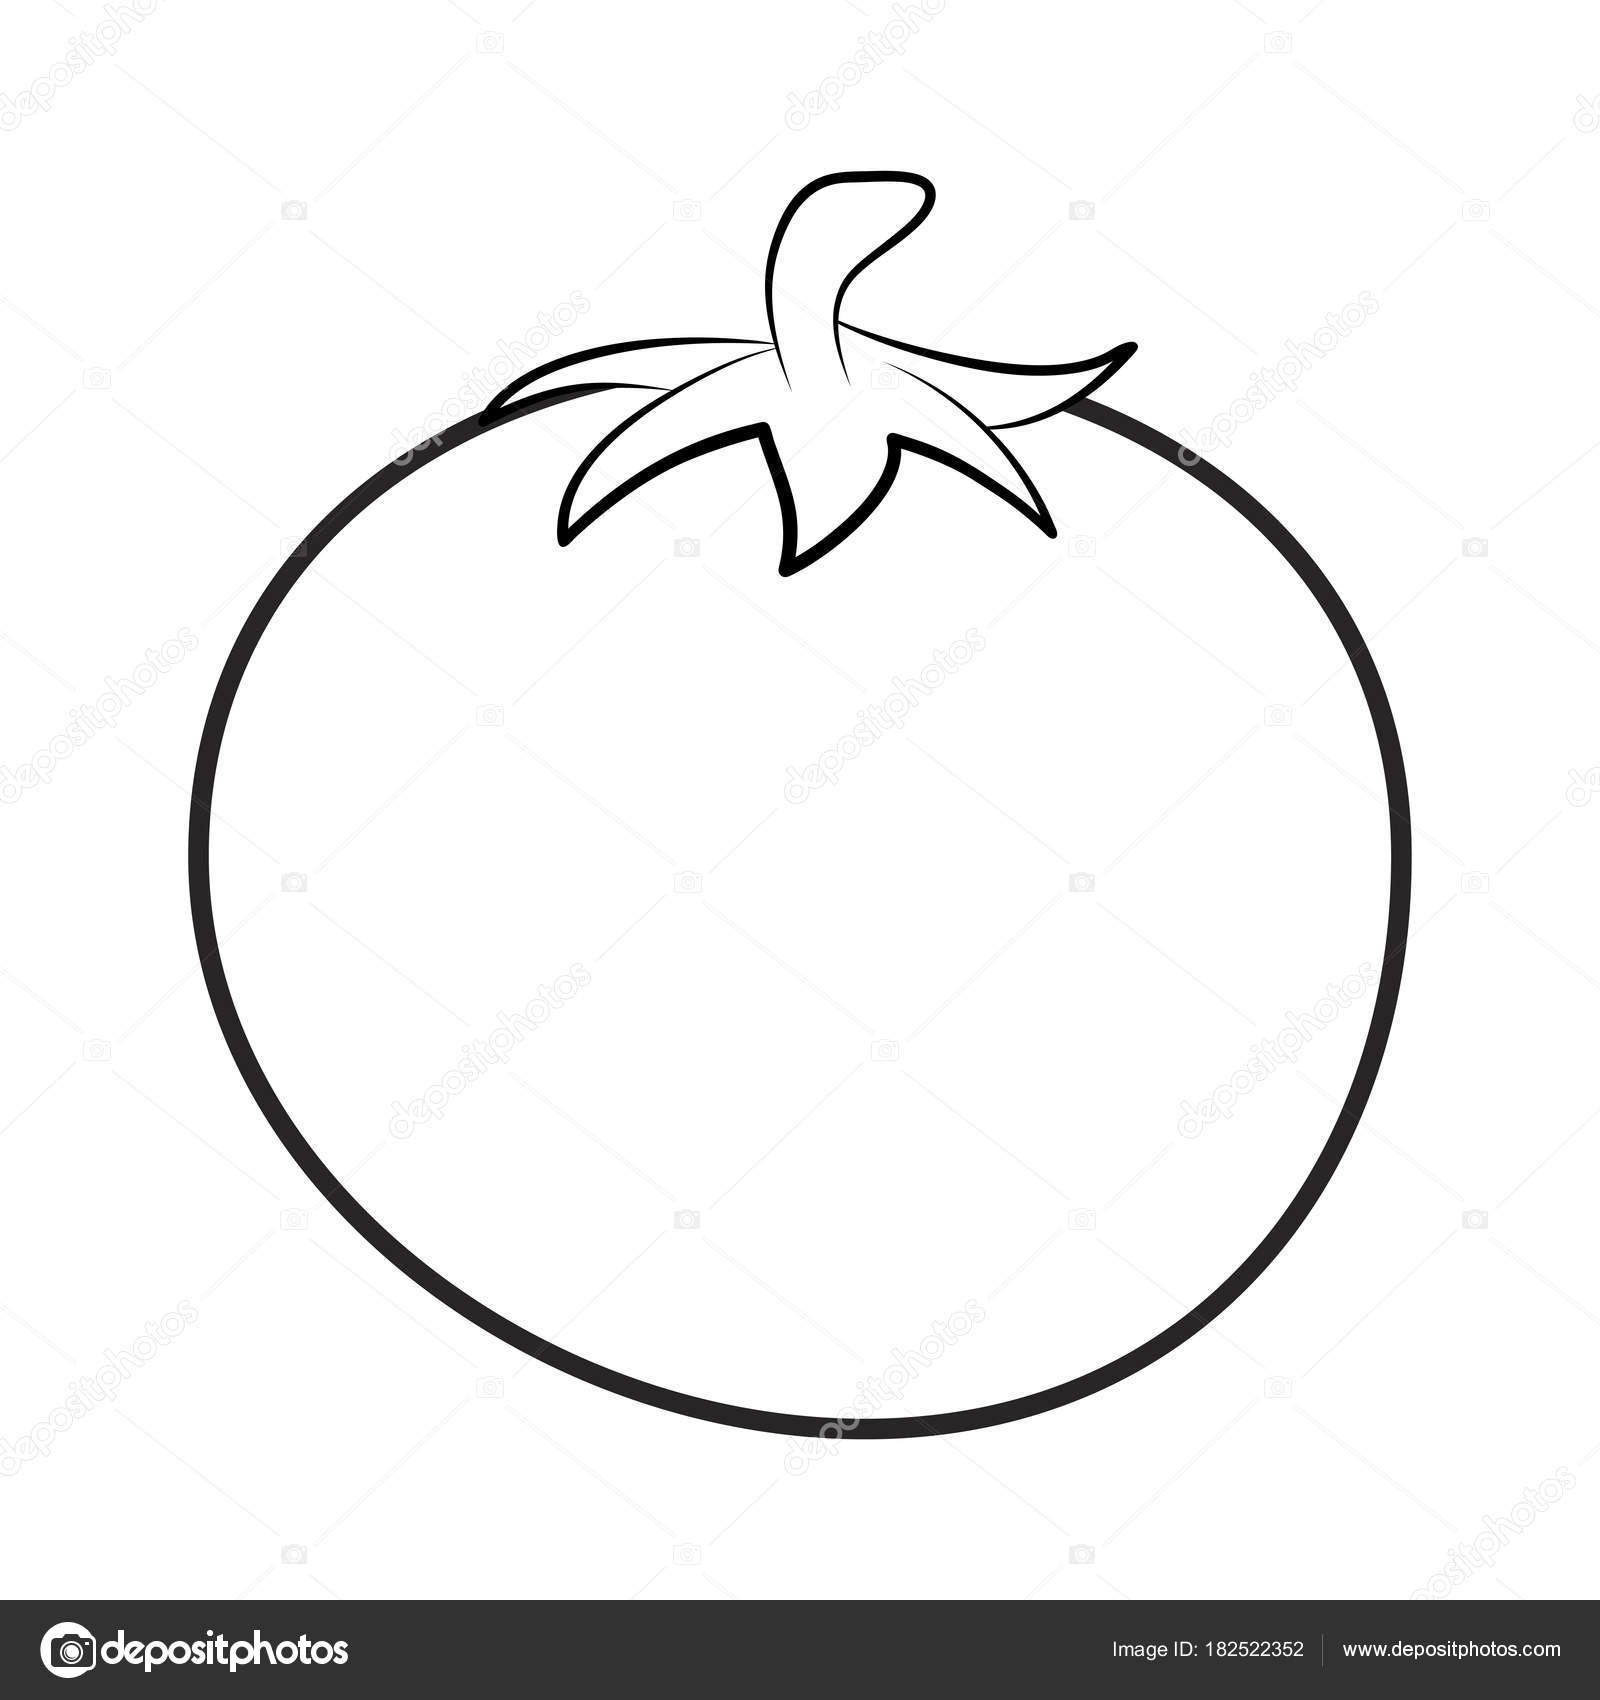 tomato outline tomato outline for colouring book isolated on white tomato outline